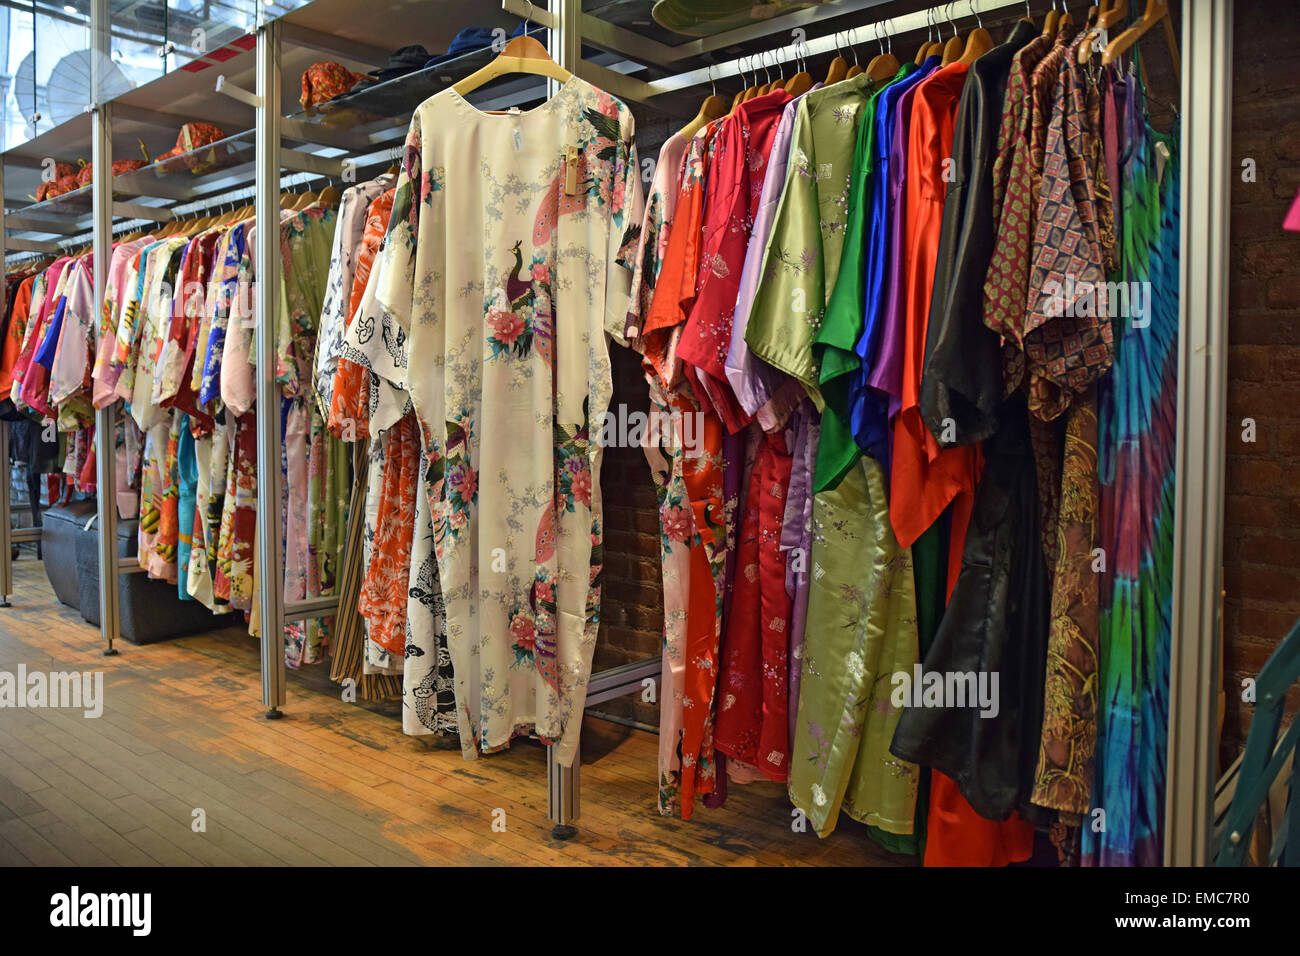 Colorful Chinese women's robes for sale at Pearl River on Broadway in Downtown Manhattan, New York City. - Stock Image